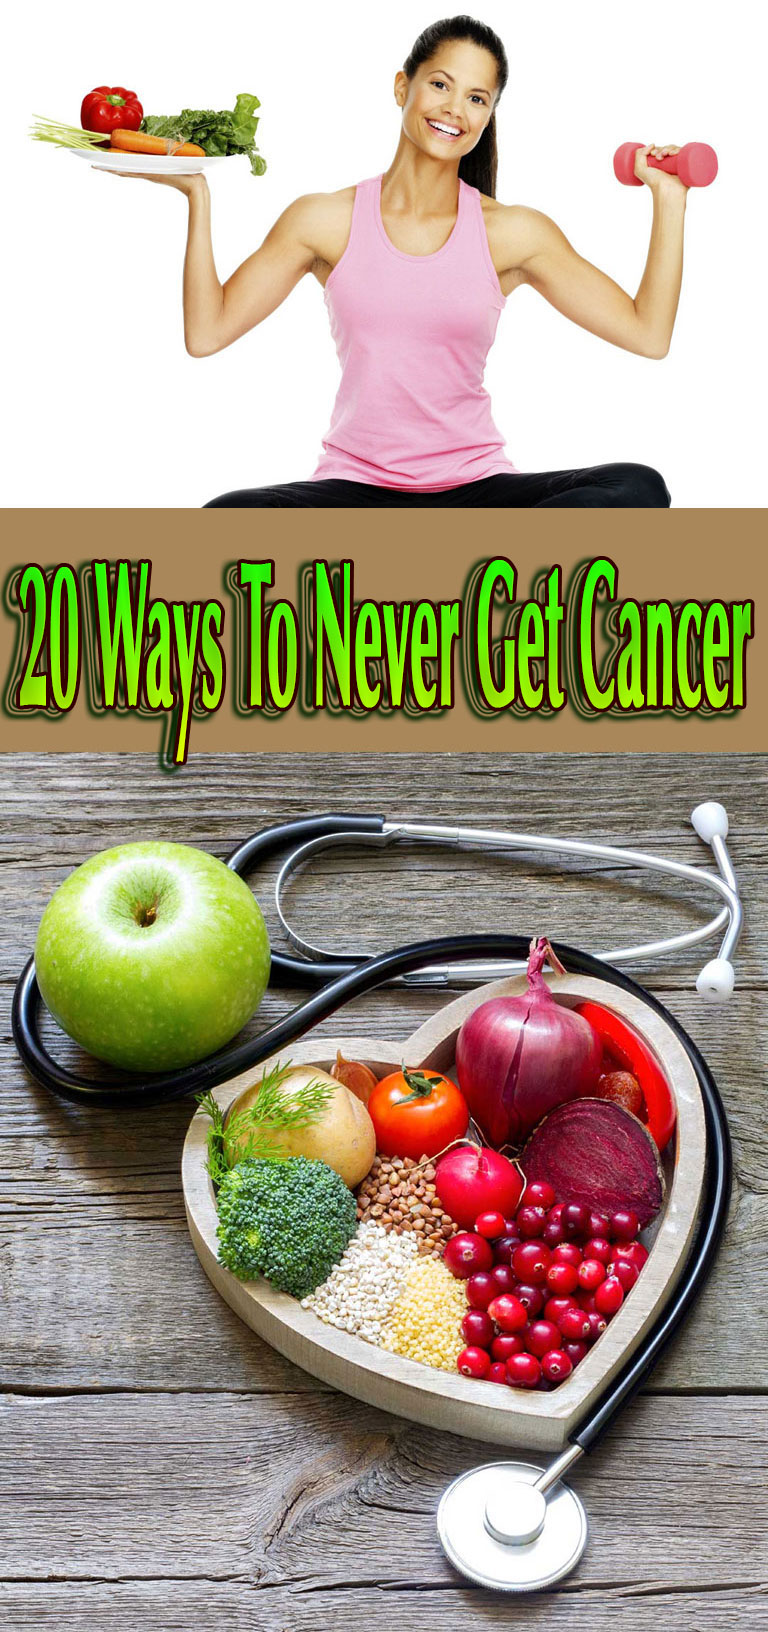 20 Ways To Never Get Cancer